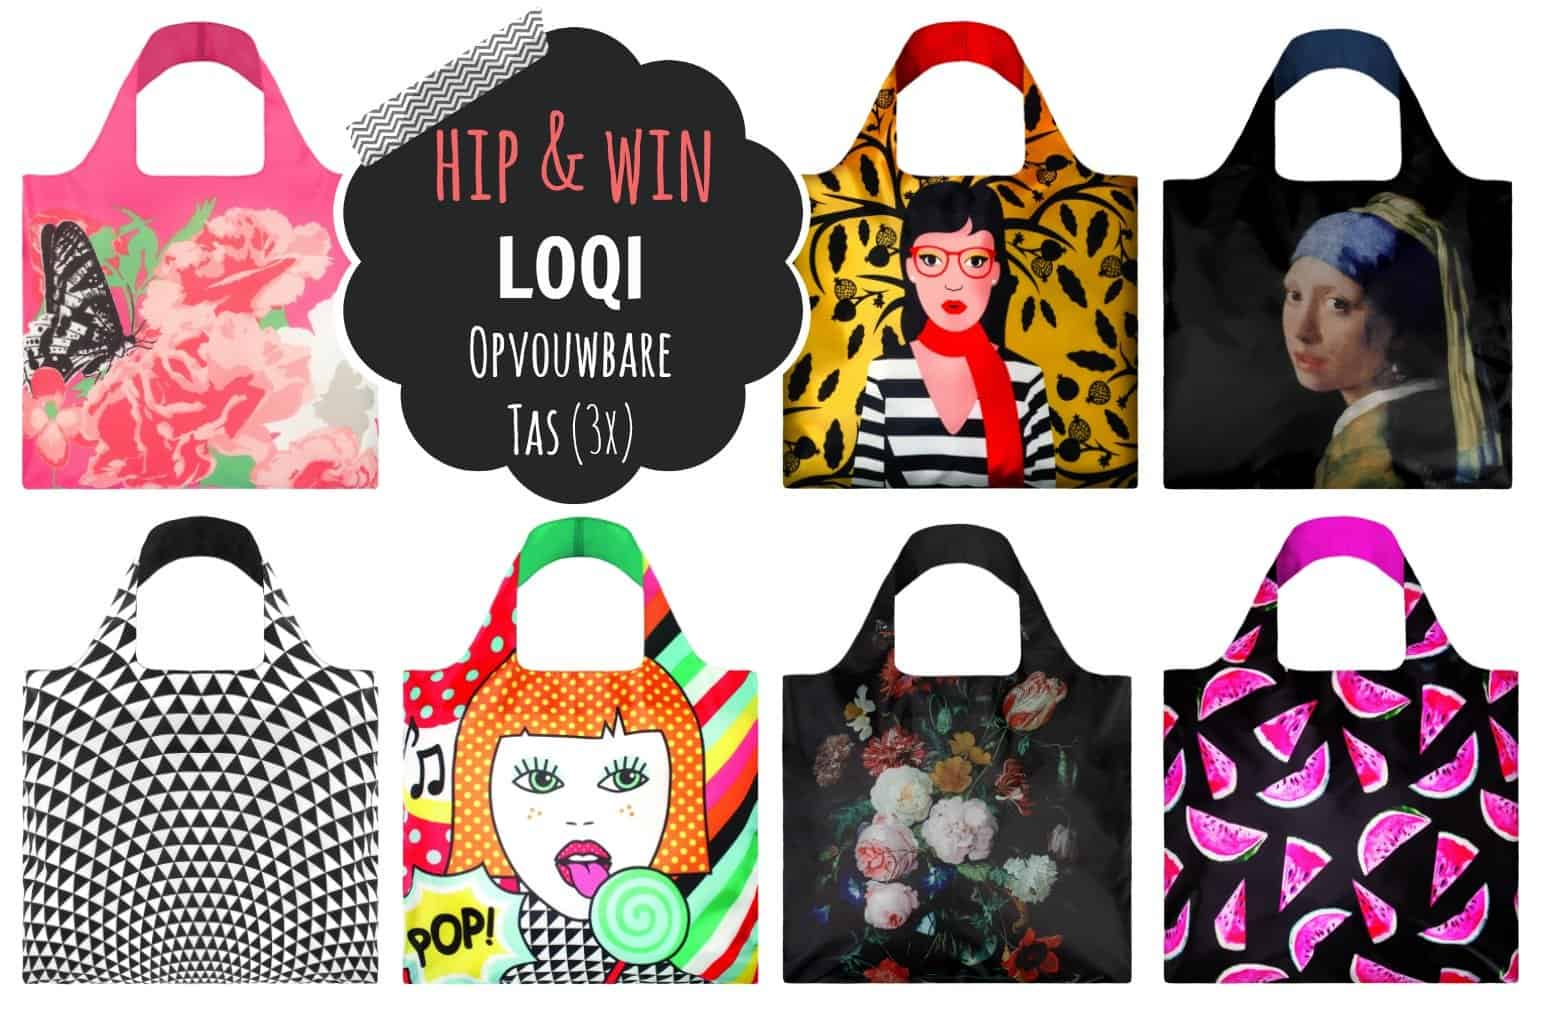 No Waste Design giveaway: LOQI opvouwbare tas (3x)